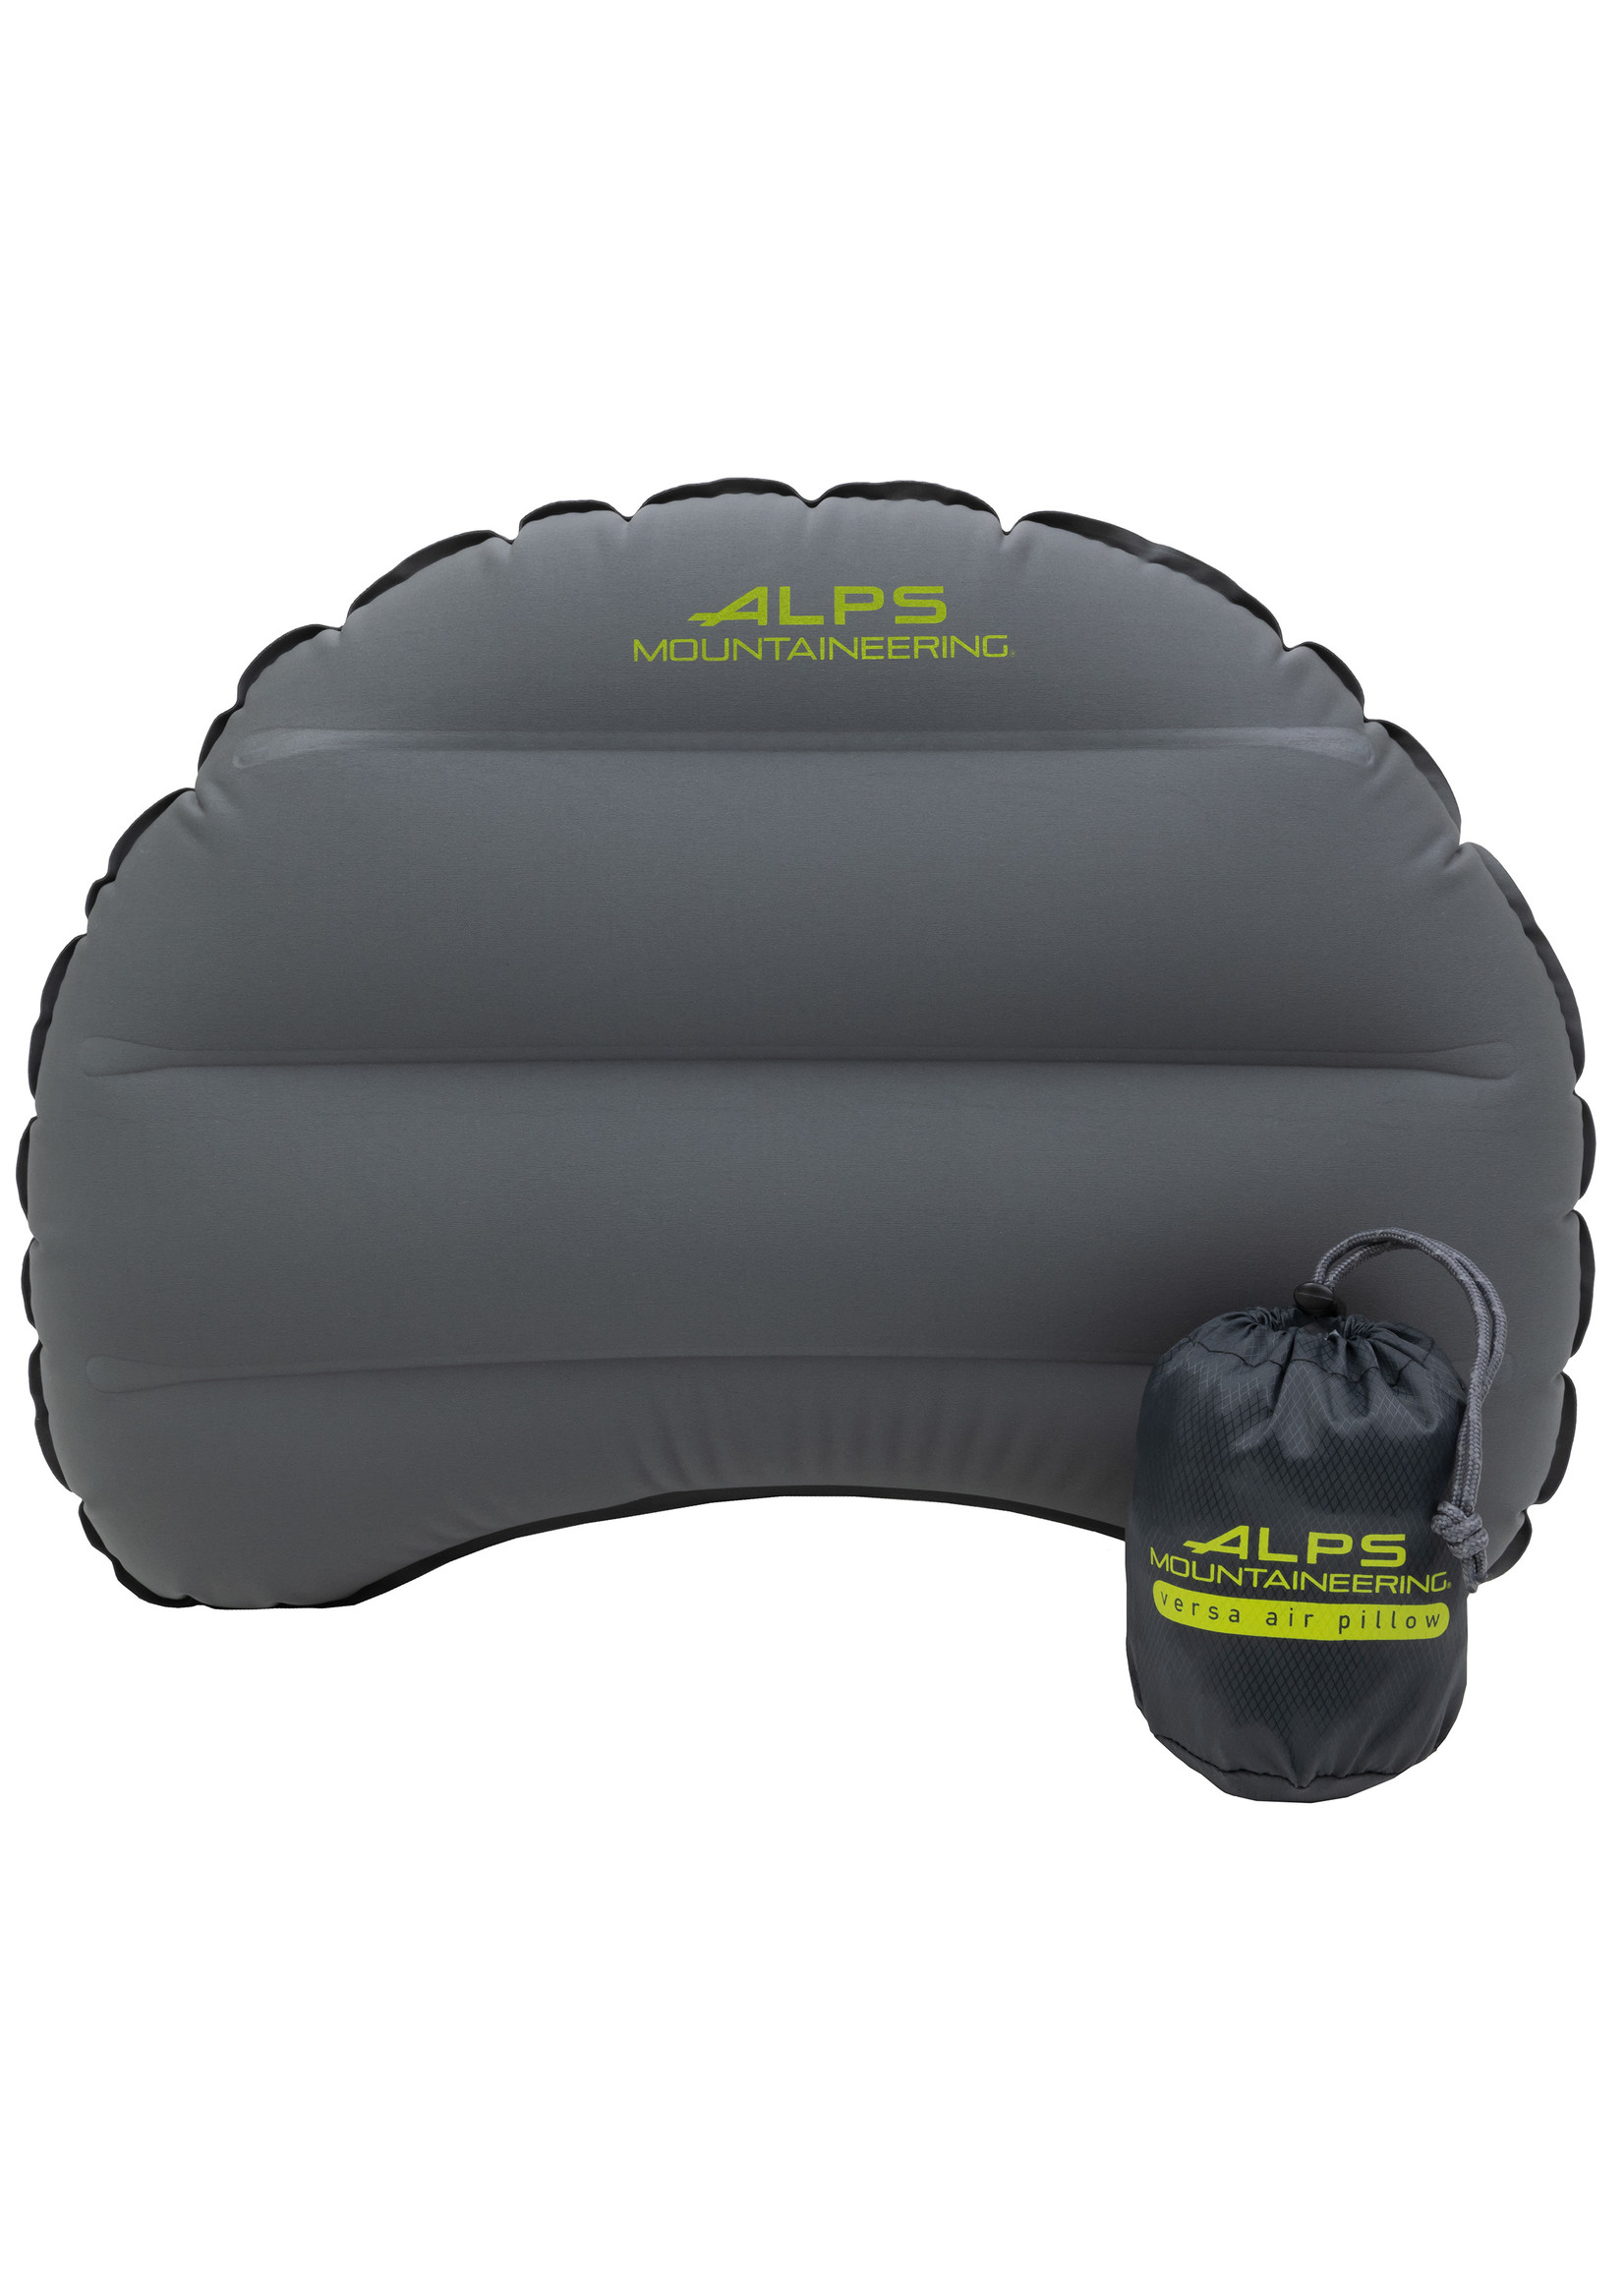 Alps Mountaineering Alps Mountaineering Versa Pillow